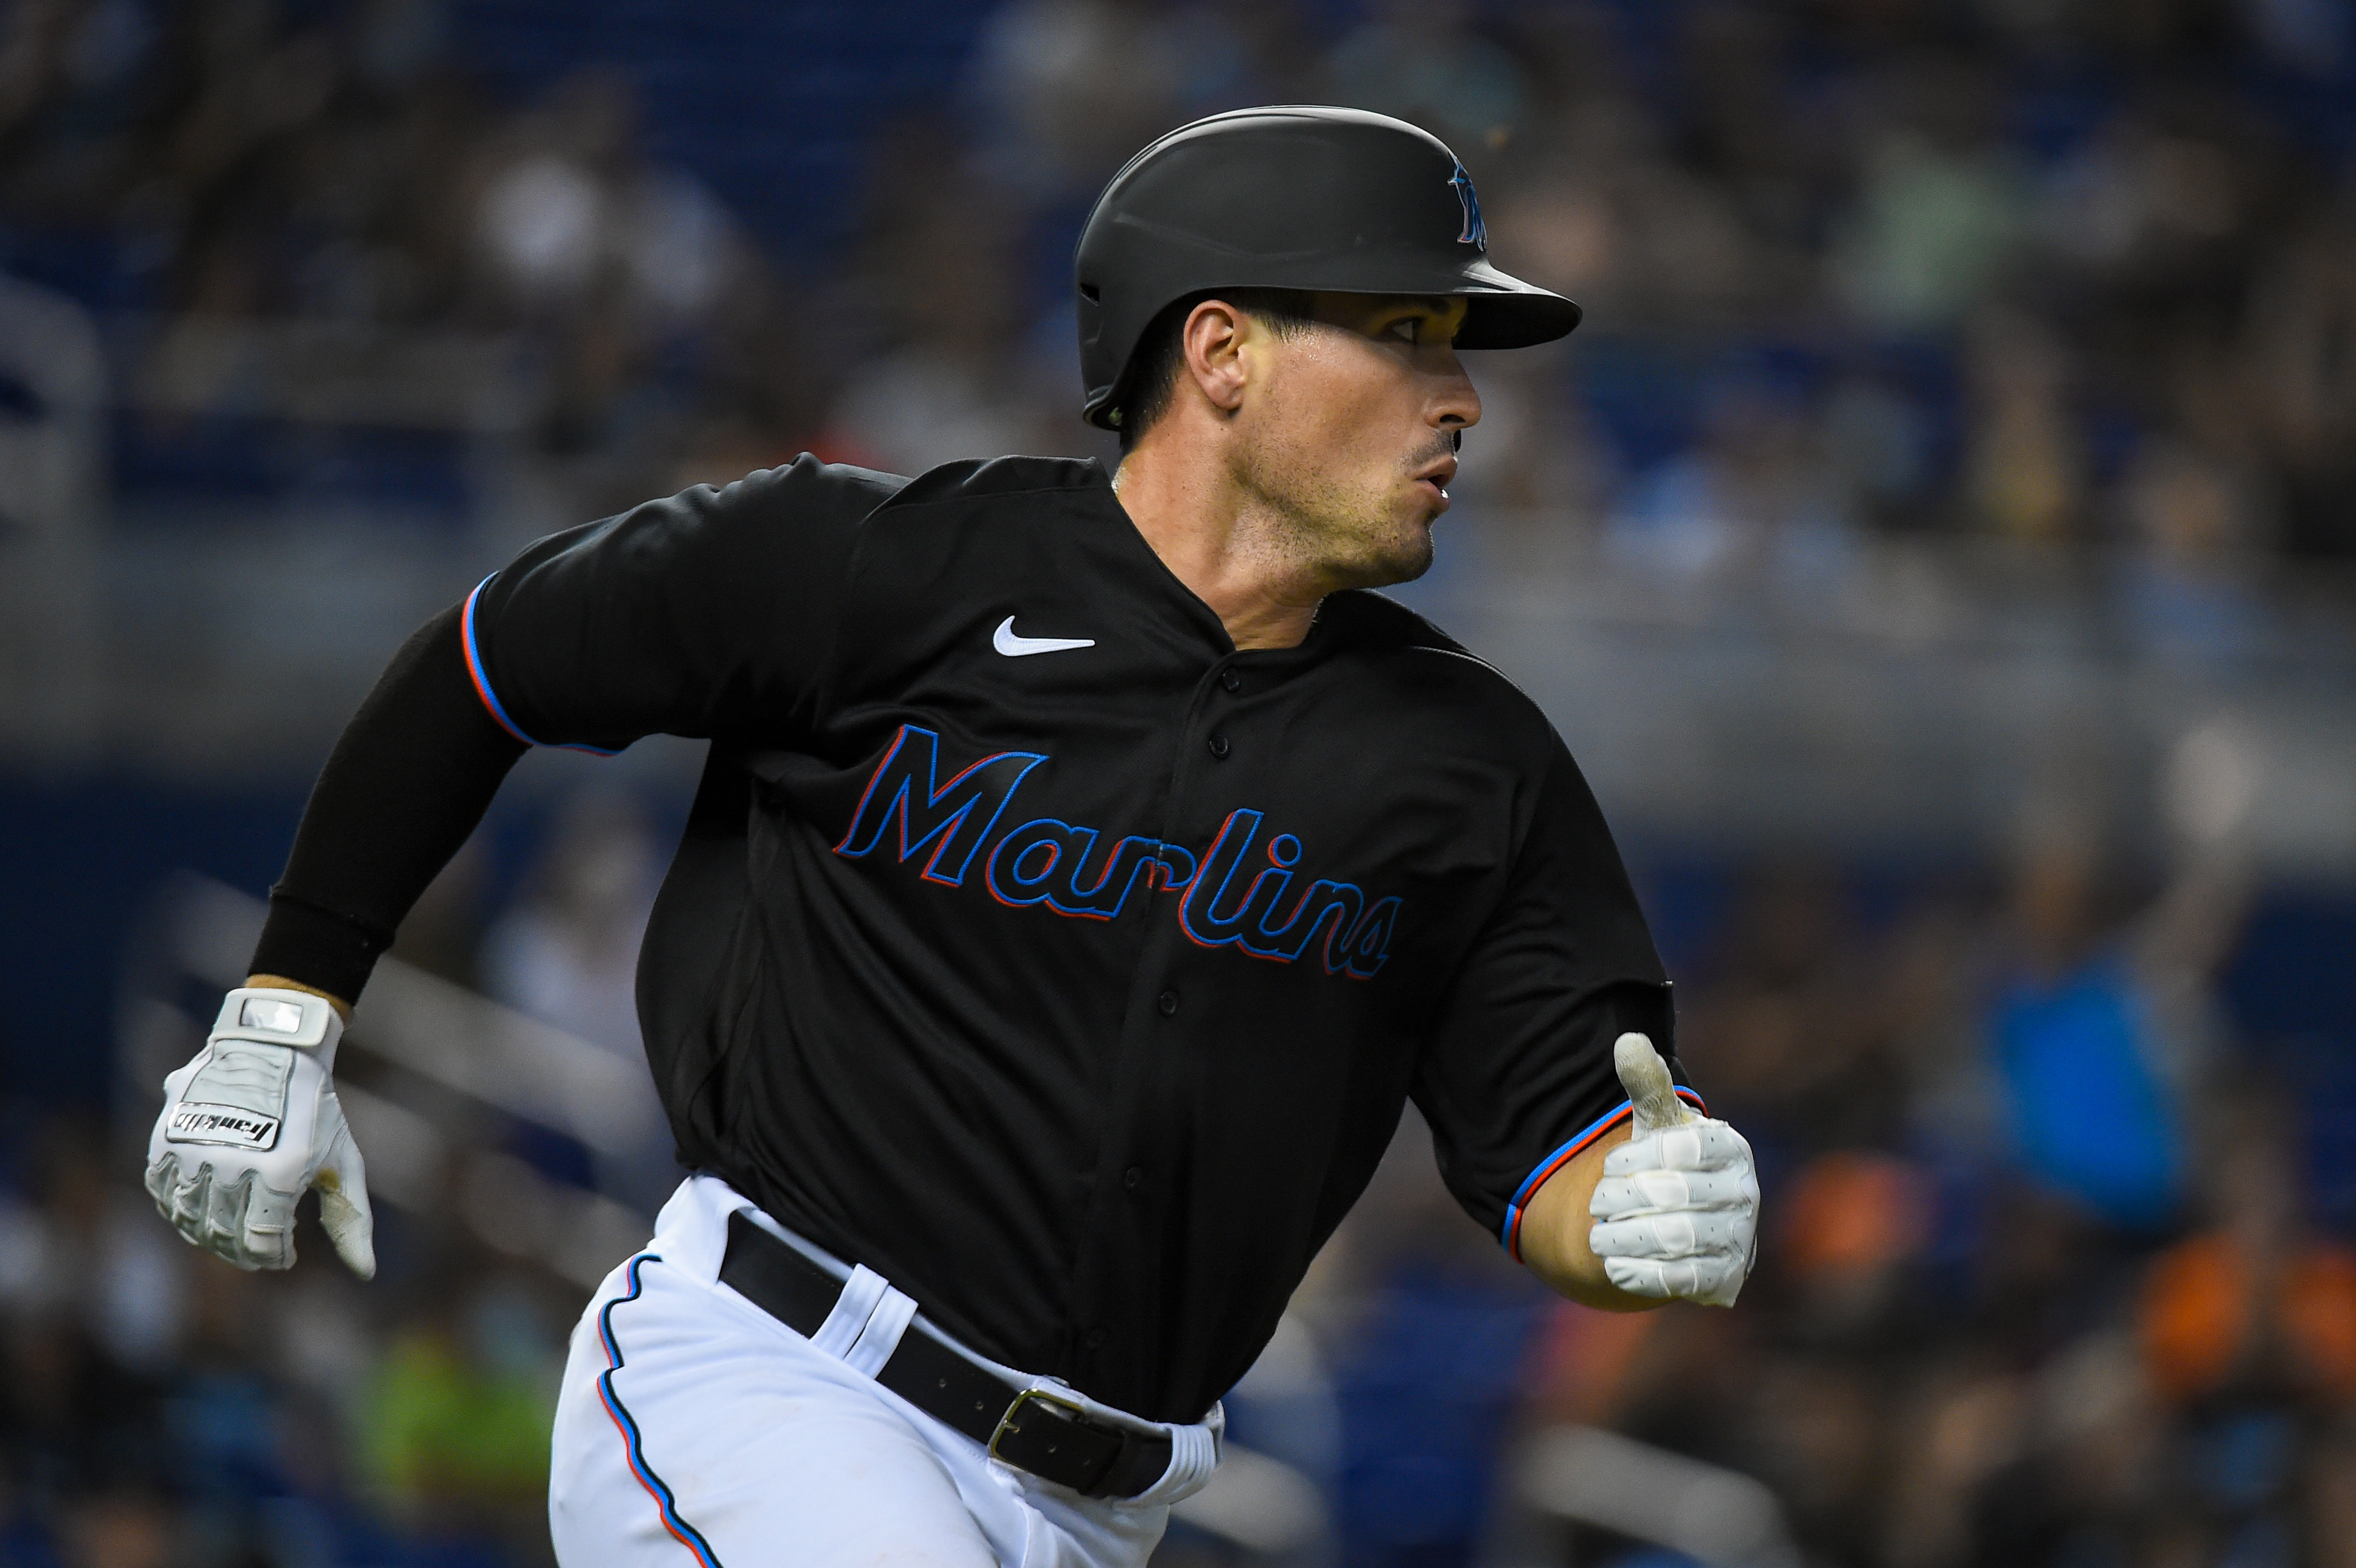 Nick Fortes #84 of the Miami Marlins runs towards first base after hitting a single in the first inning against the Pittsburgh Pirates at loanDepot park